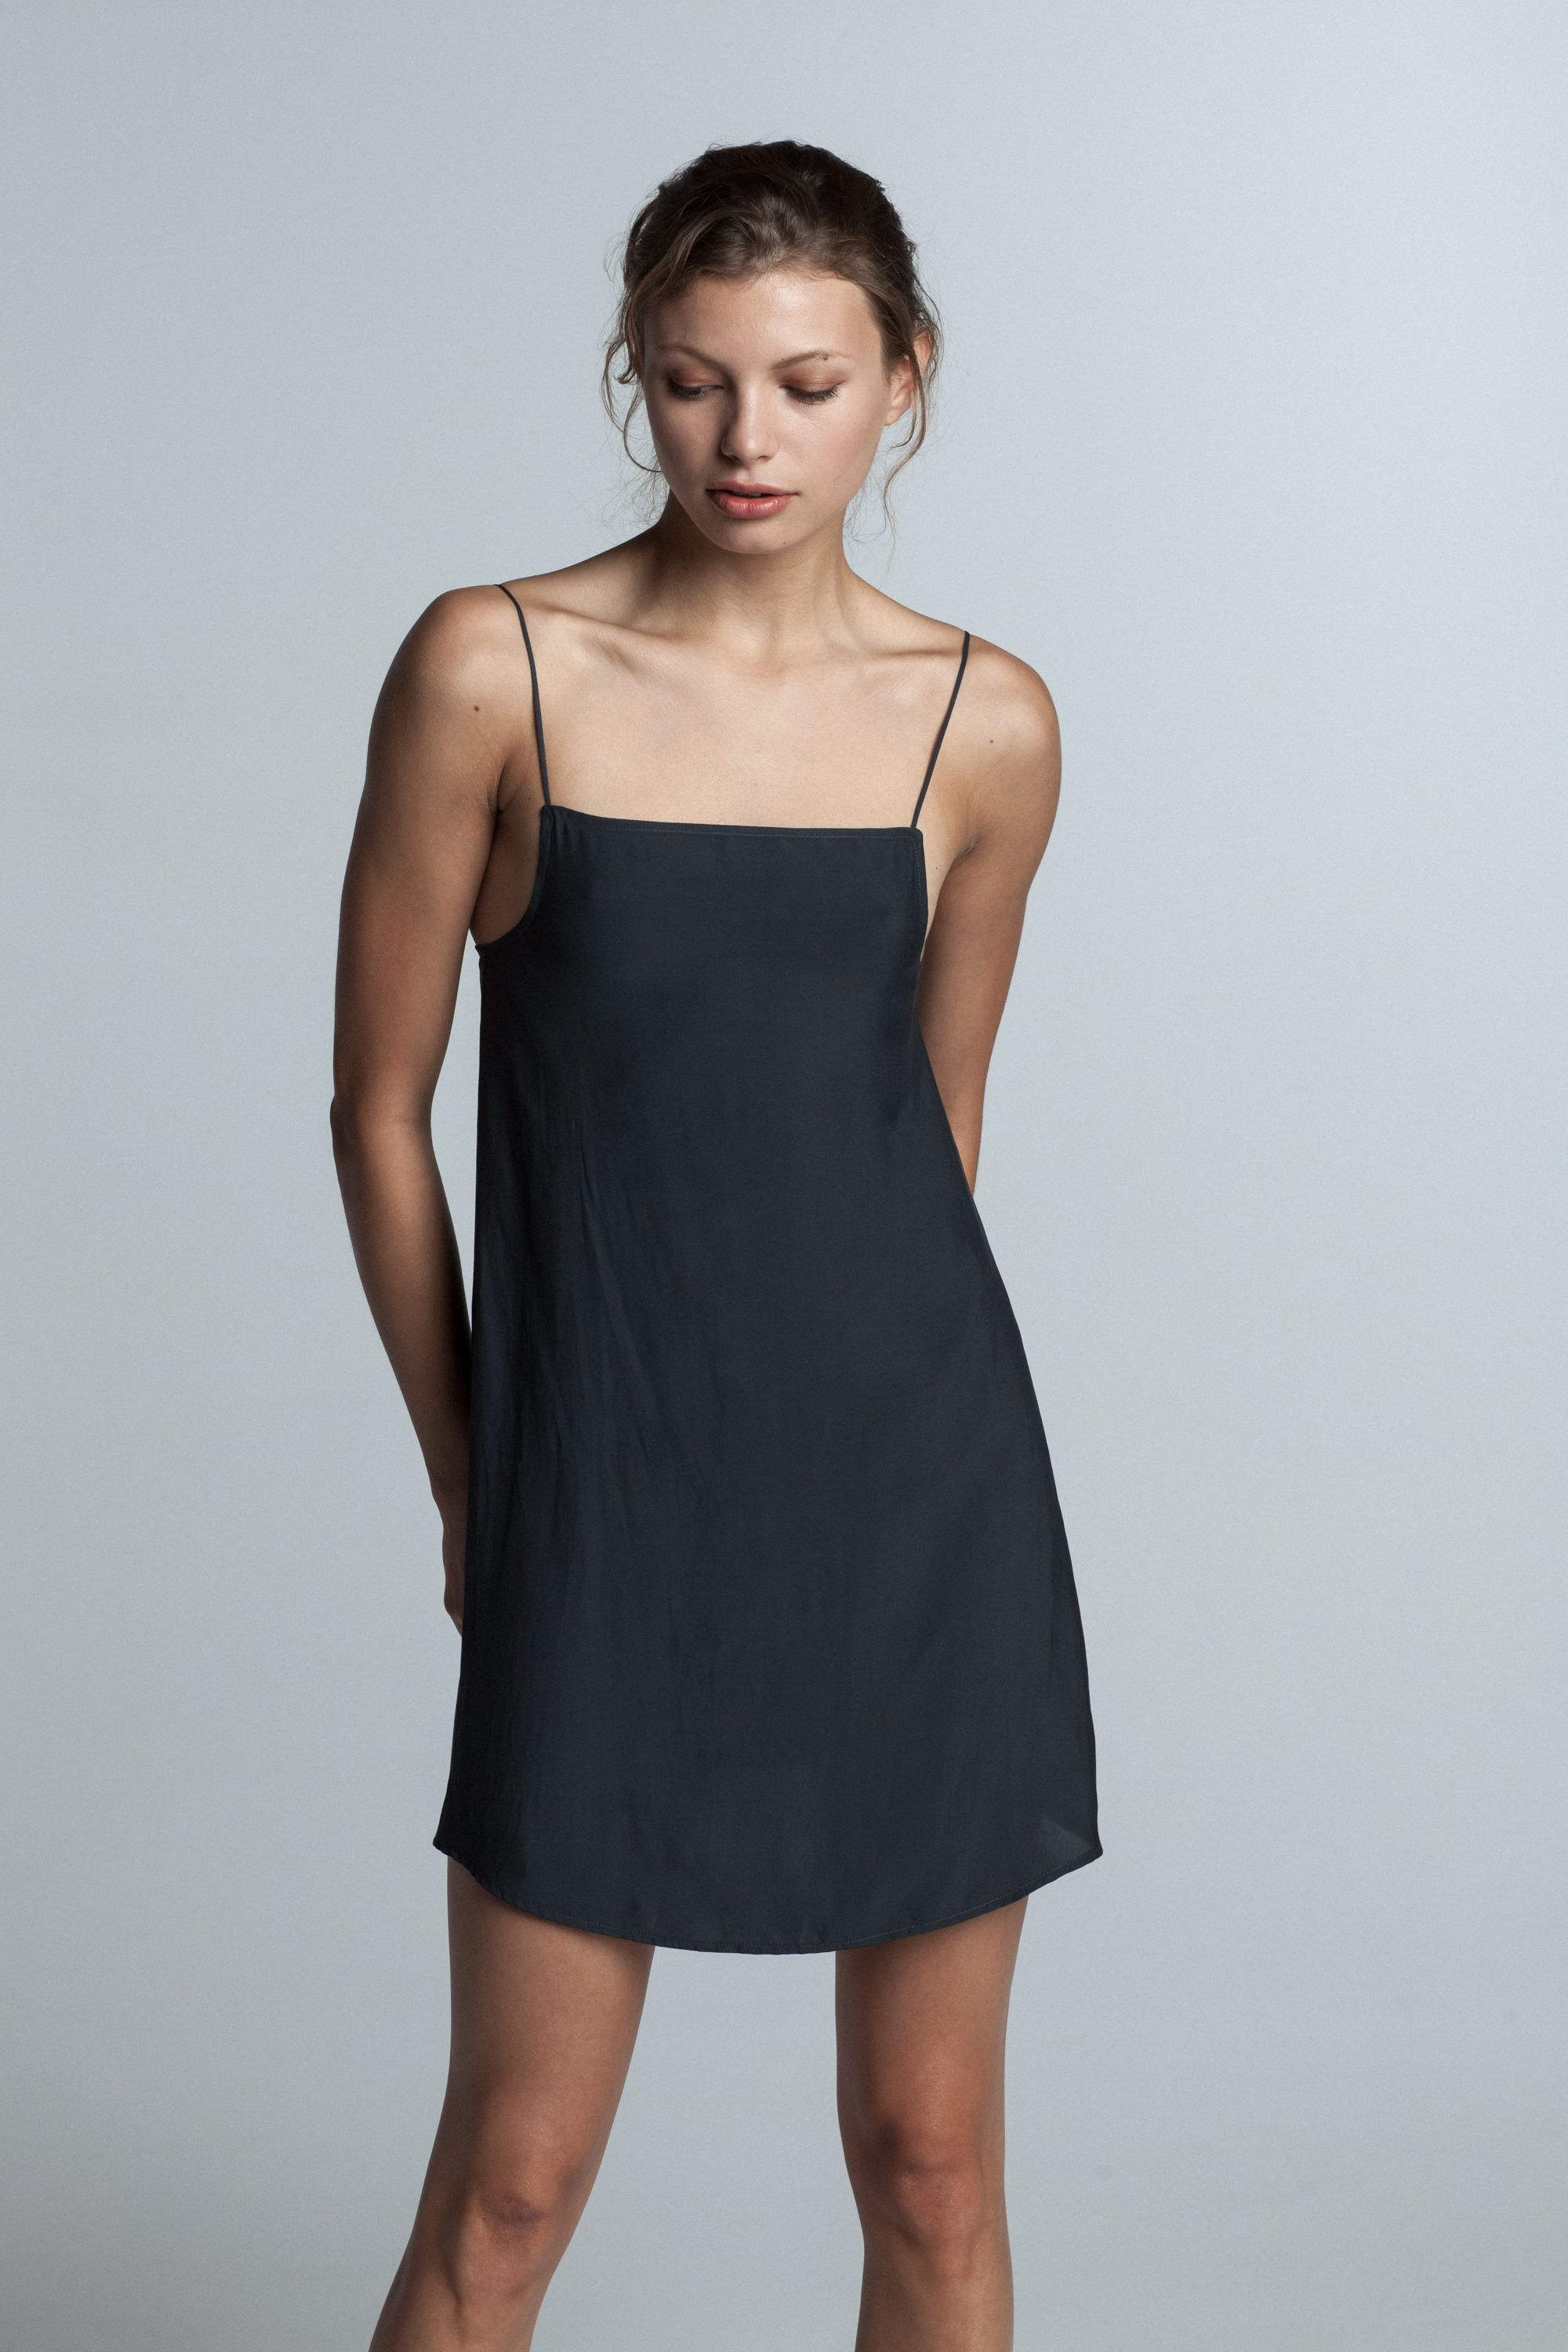 22e4d5a1522b4 Trois Claudia Slip Dress in Black, $215.00 | My Style | Dresses ...